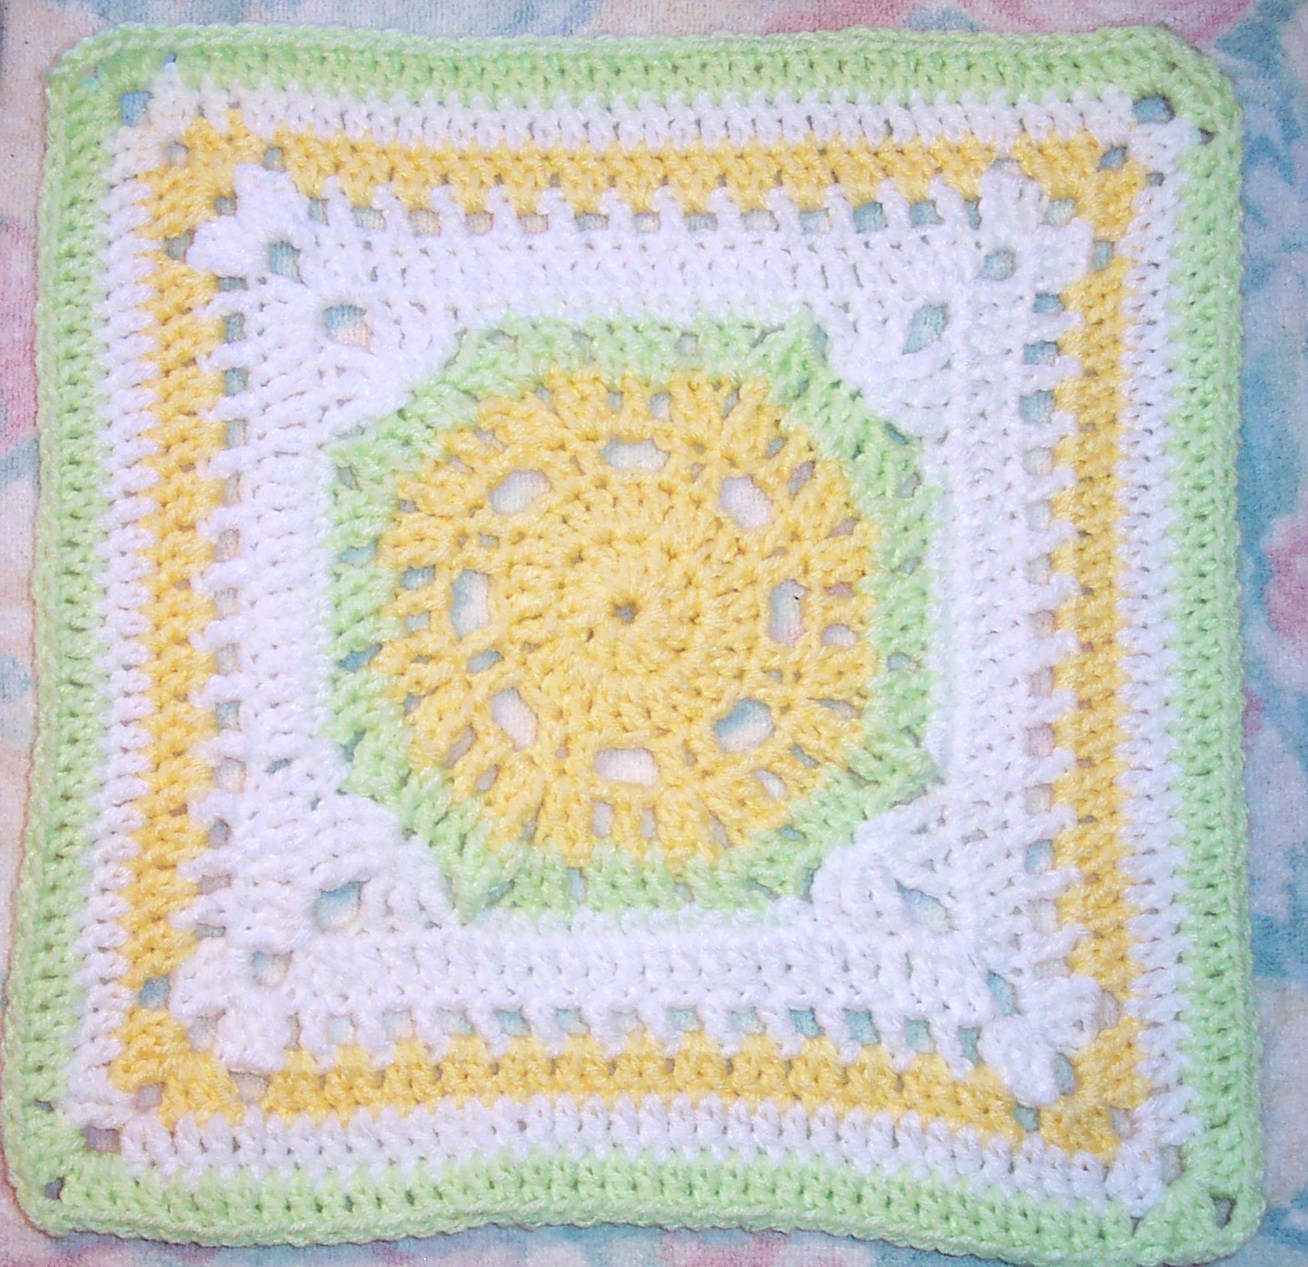 Knitting Patterns For 12 Inch Squares : SmoothFox Crochet and Knit: SmoothFoxs Lemony Lime Citrus Square 12x12 F...